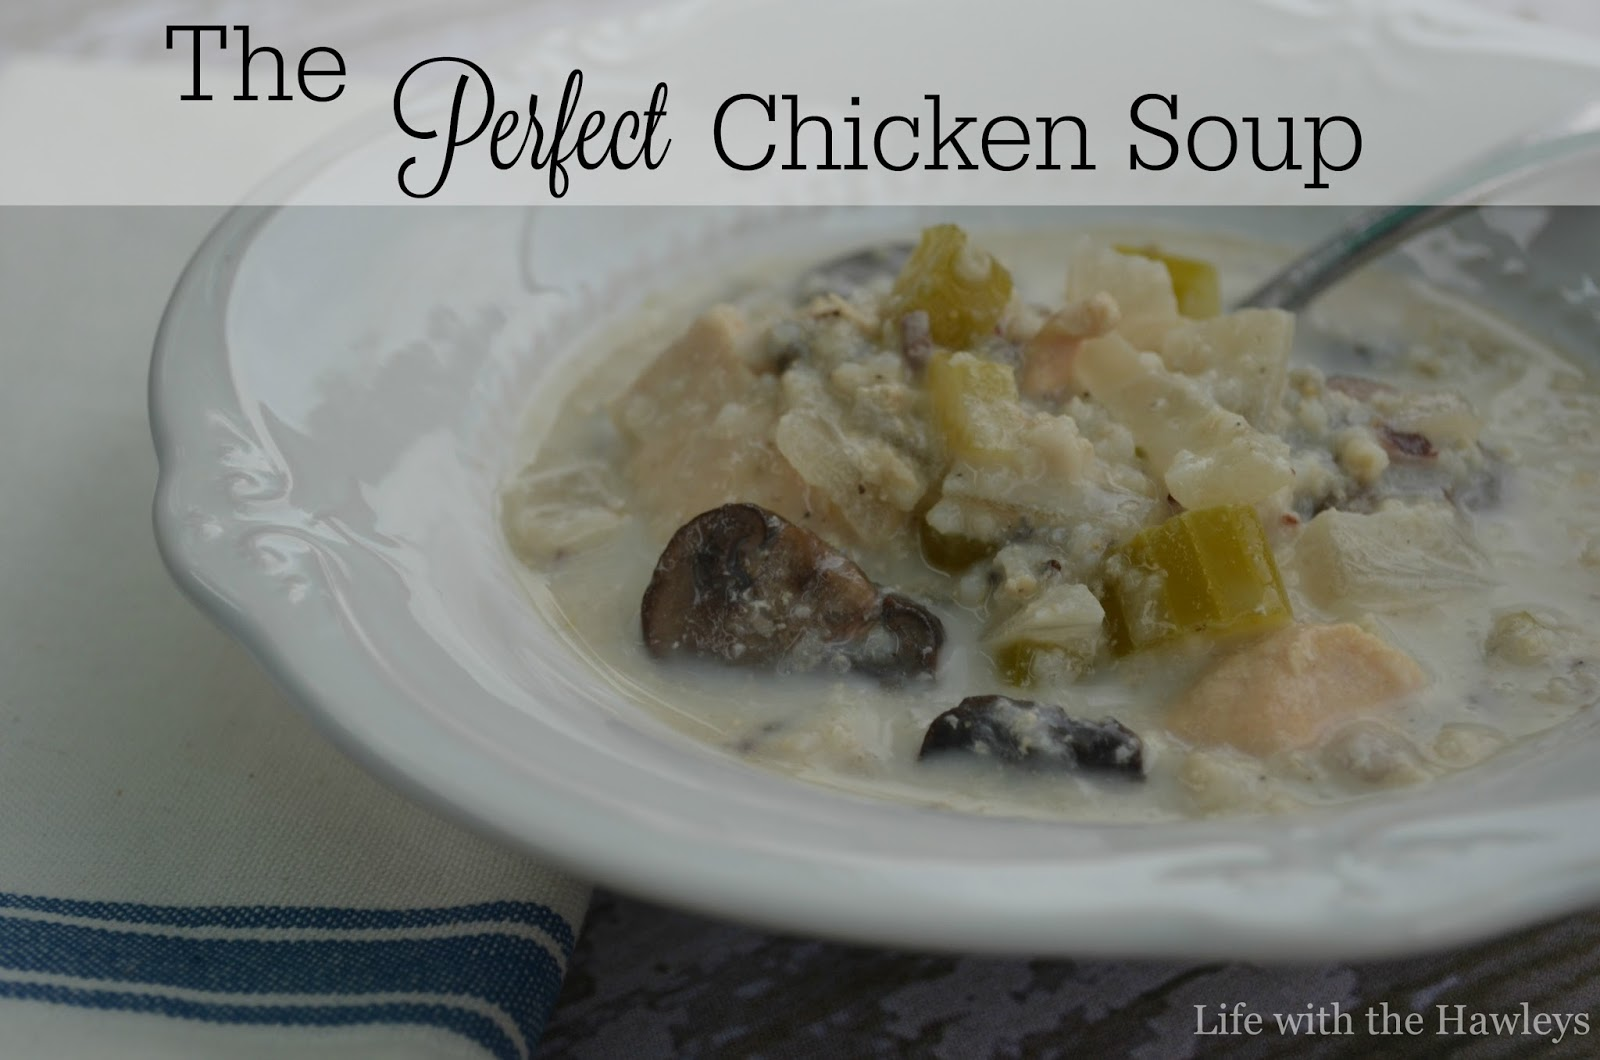 Hawley: The *Perfect* Chicken Soup